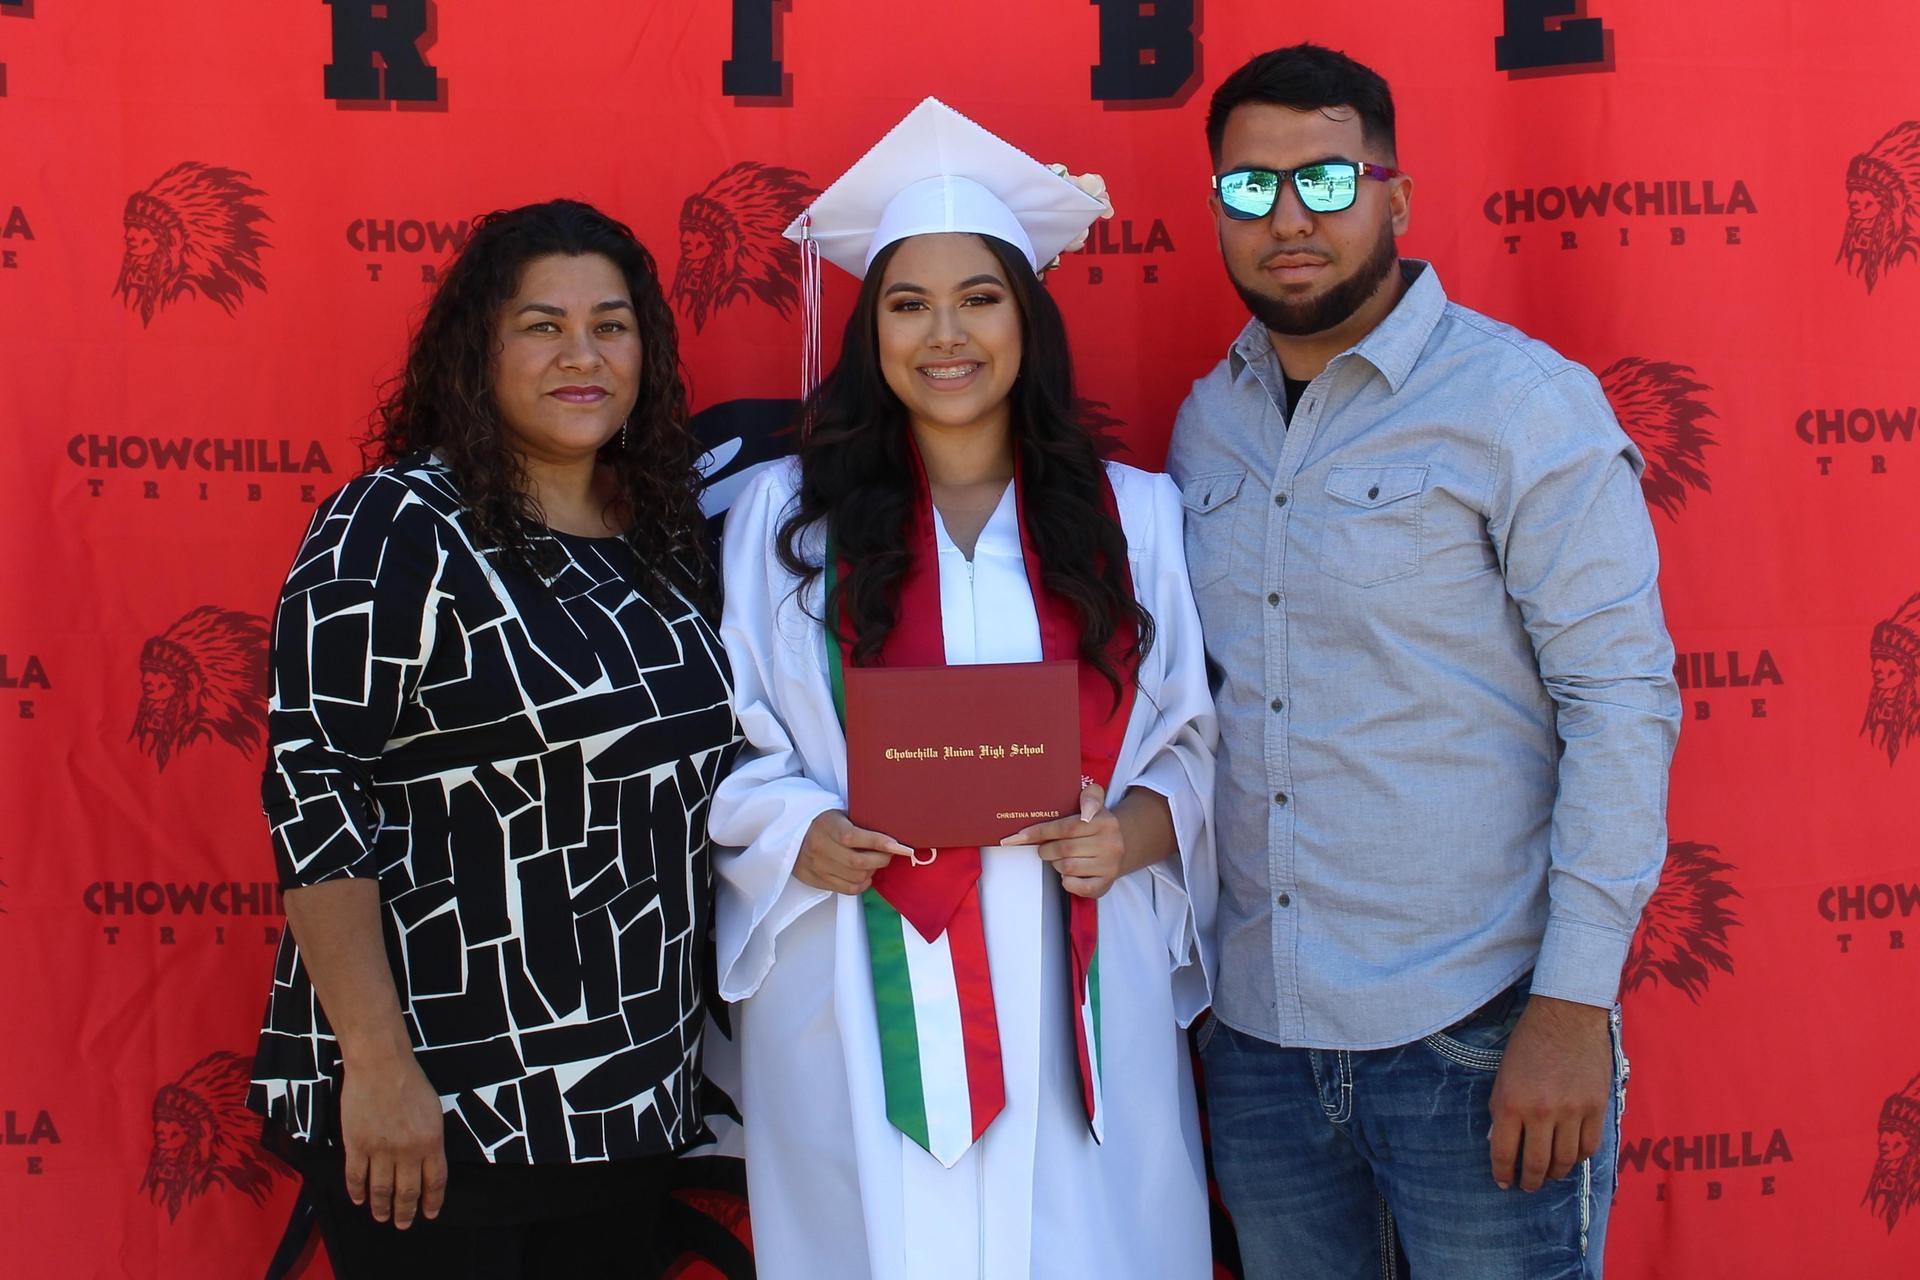 Christina Morales and family